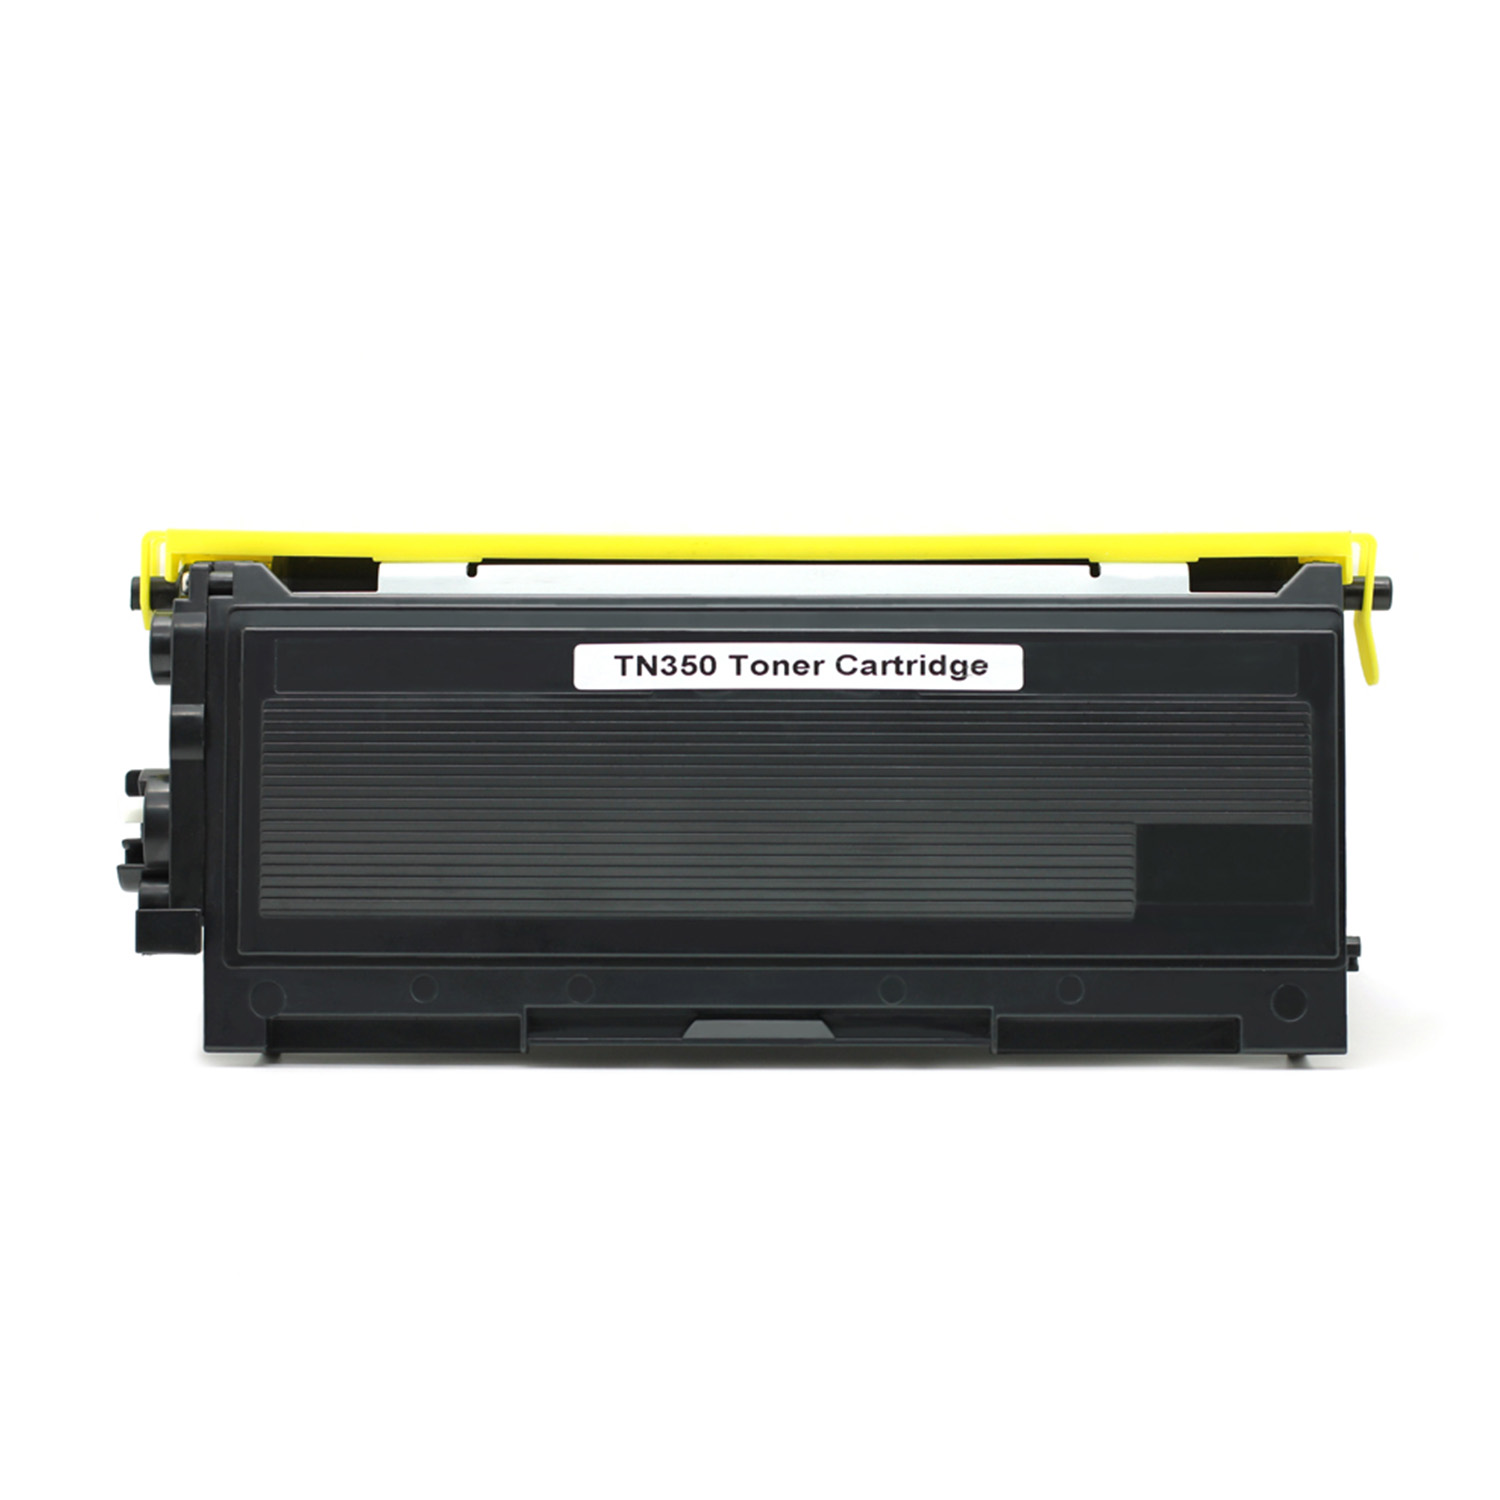 CBD 1x Toner Cartridge for Brother TN2025 HL-2040 HL-2820 HL-2070N MFC-7820 MFC-7420